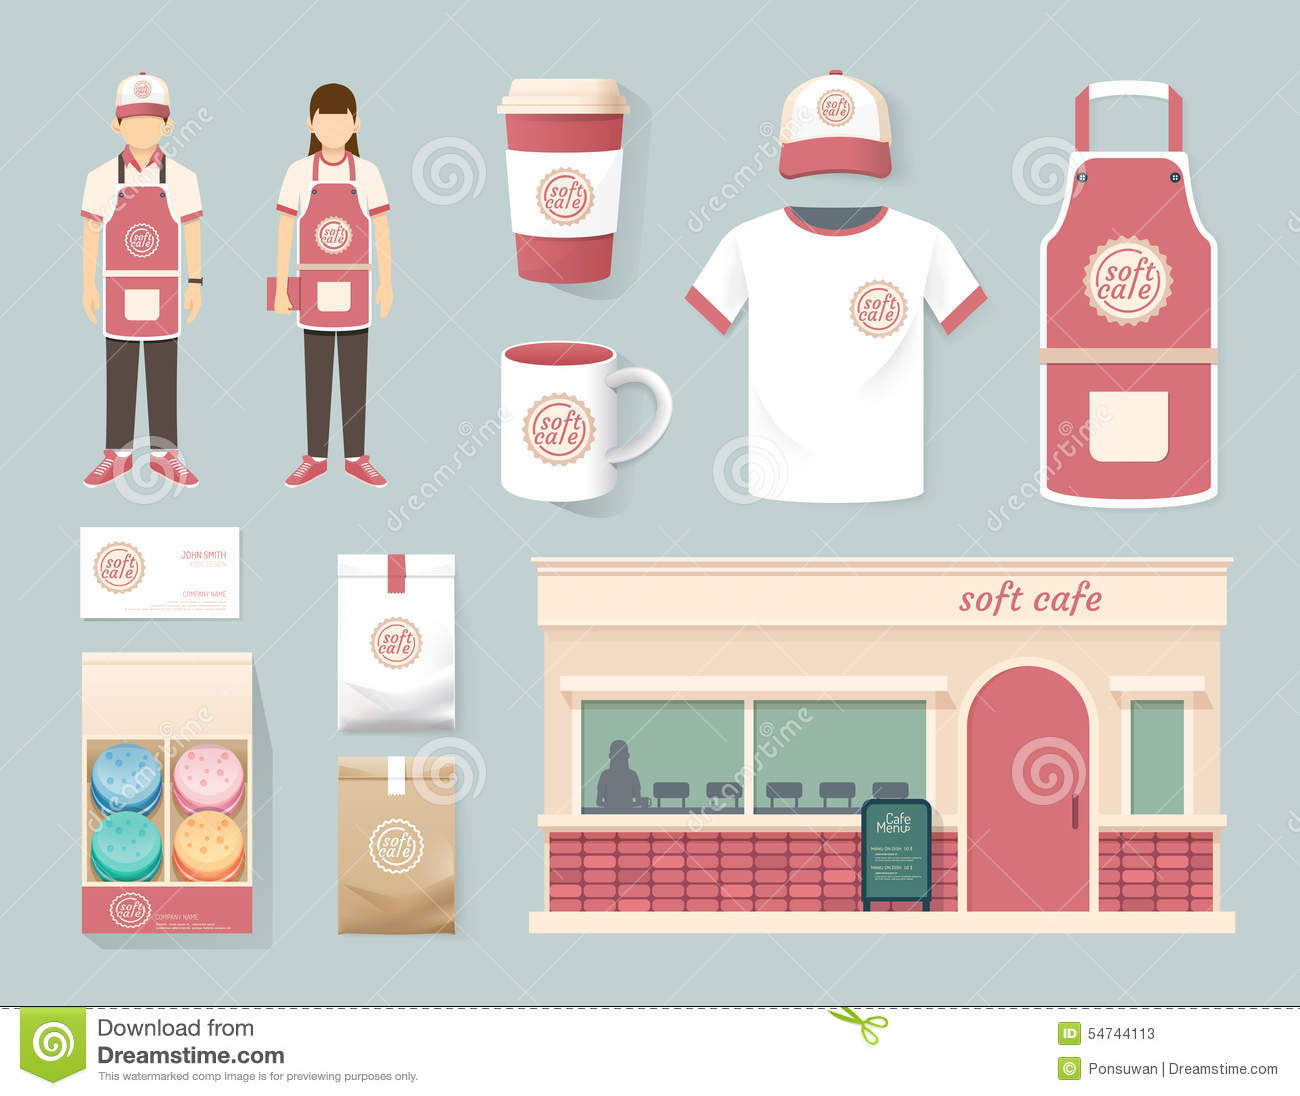 For restaurant pictures graphics illustrations clipart photos - Cafe